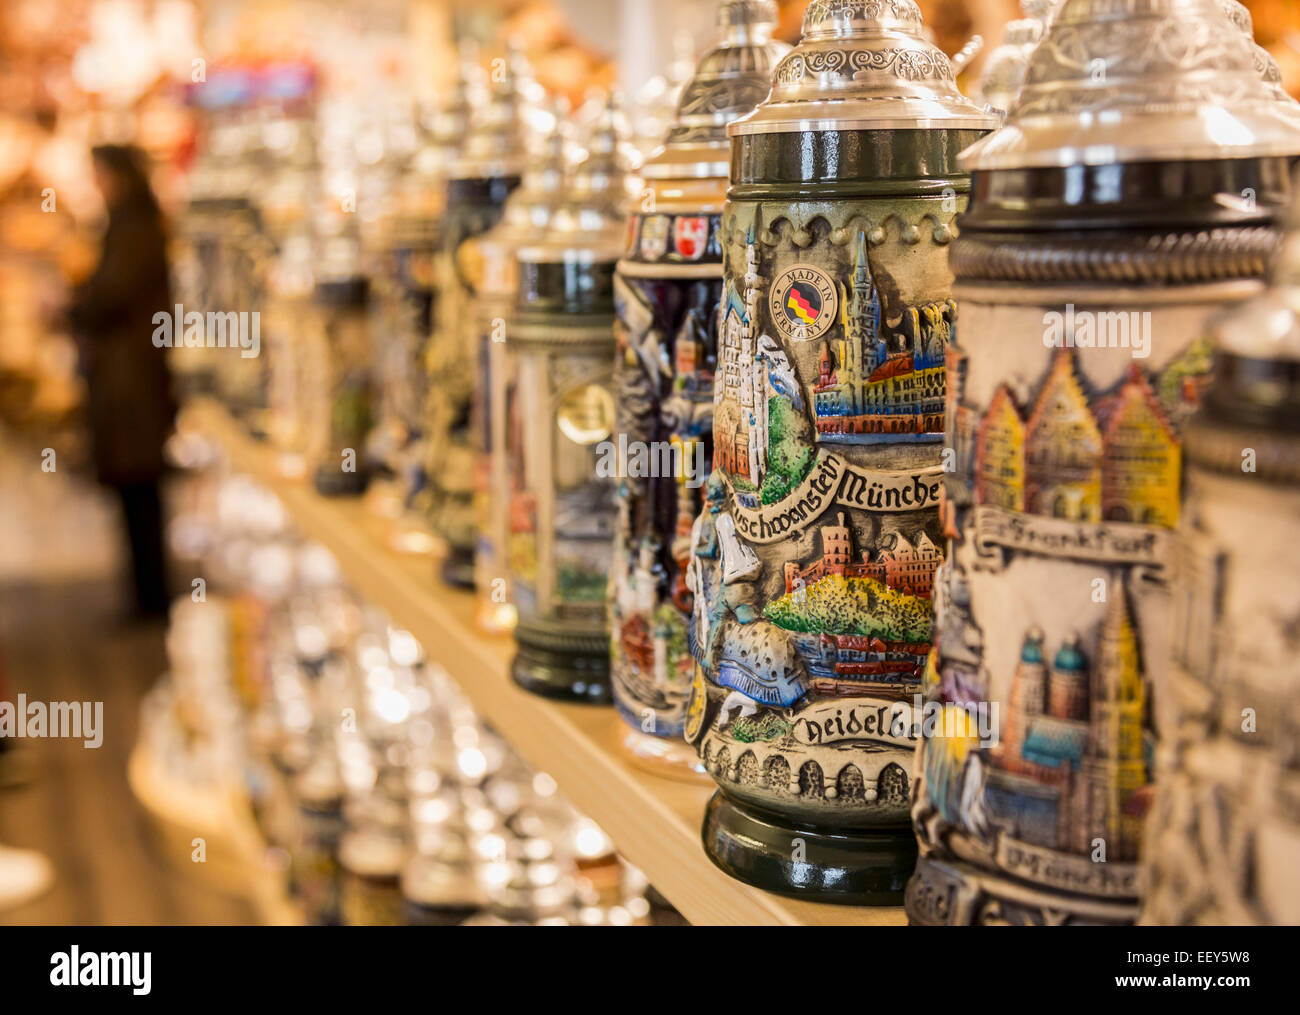 Row of German beer stein or tankards on a shelf in a shop in Regensburg, Bavaria, Germany - Stock Image